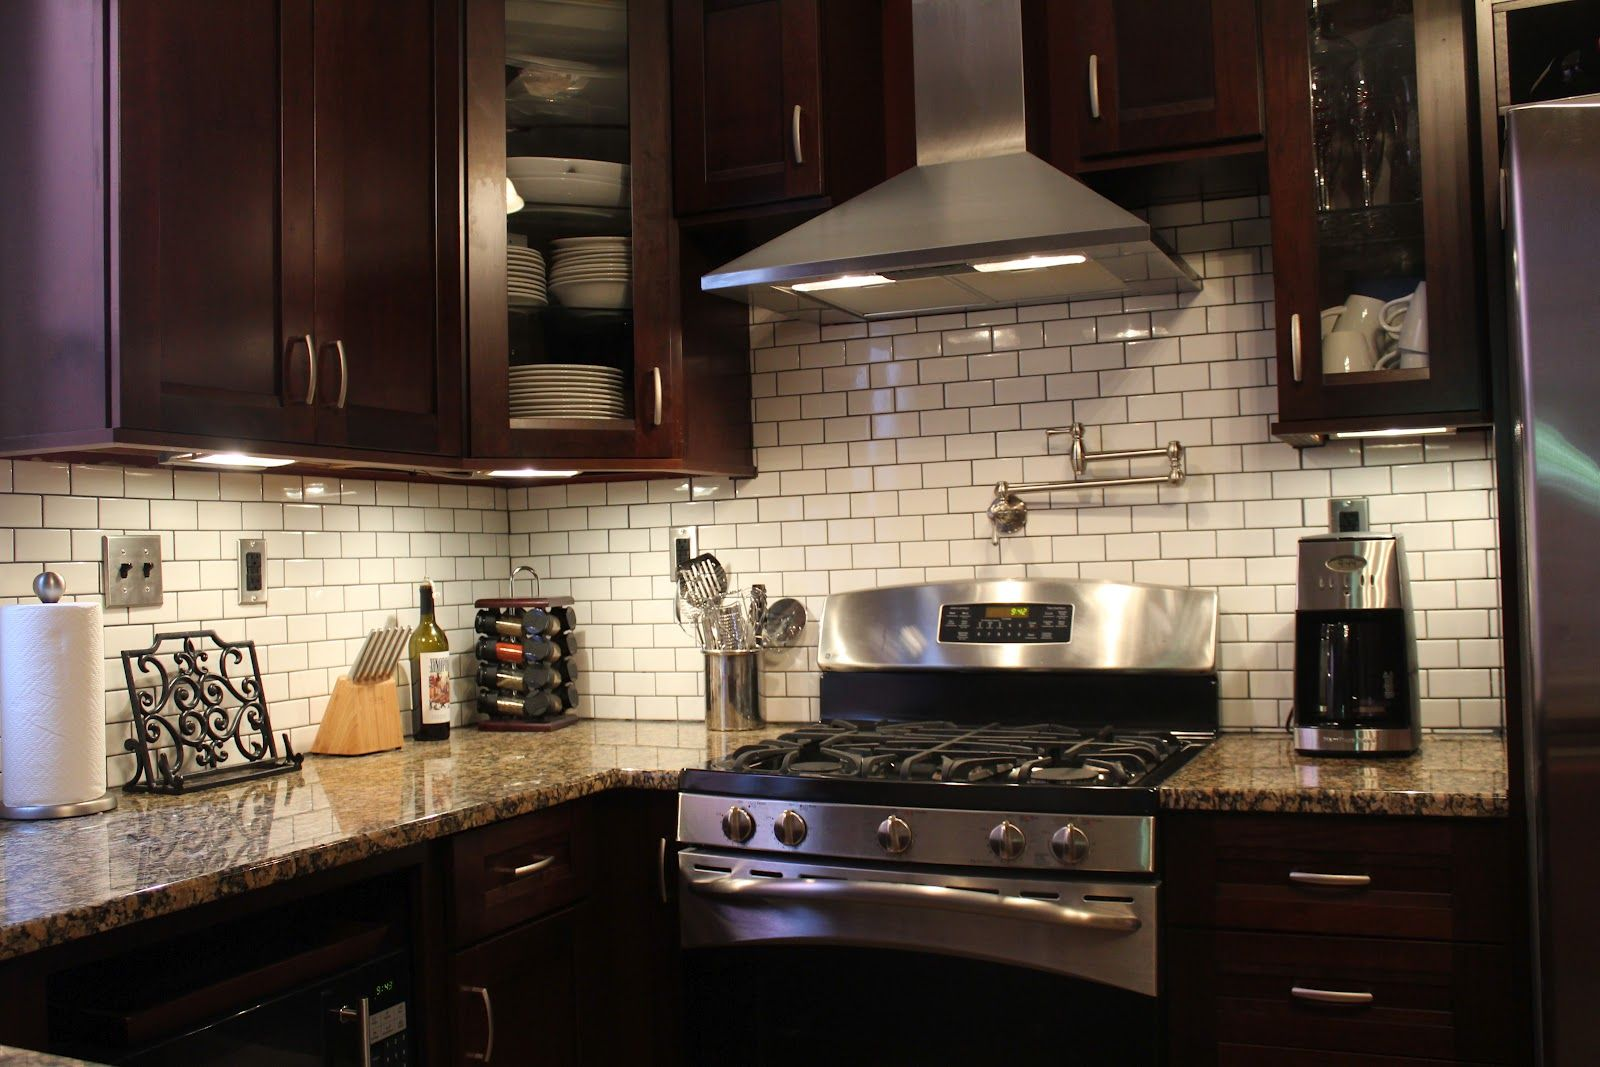 - Decoration, Brick Style White Subway Tile Backsplash On Dark Brown